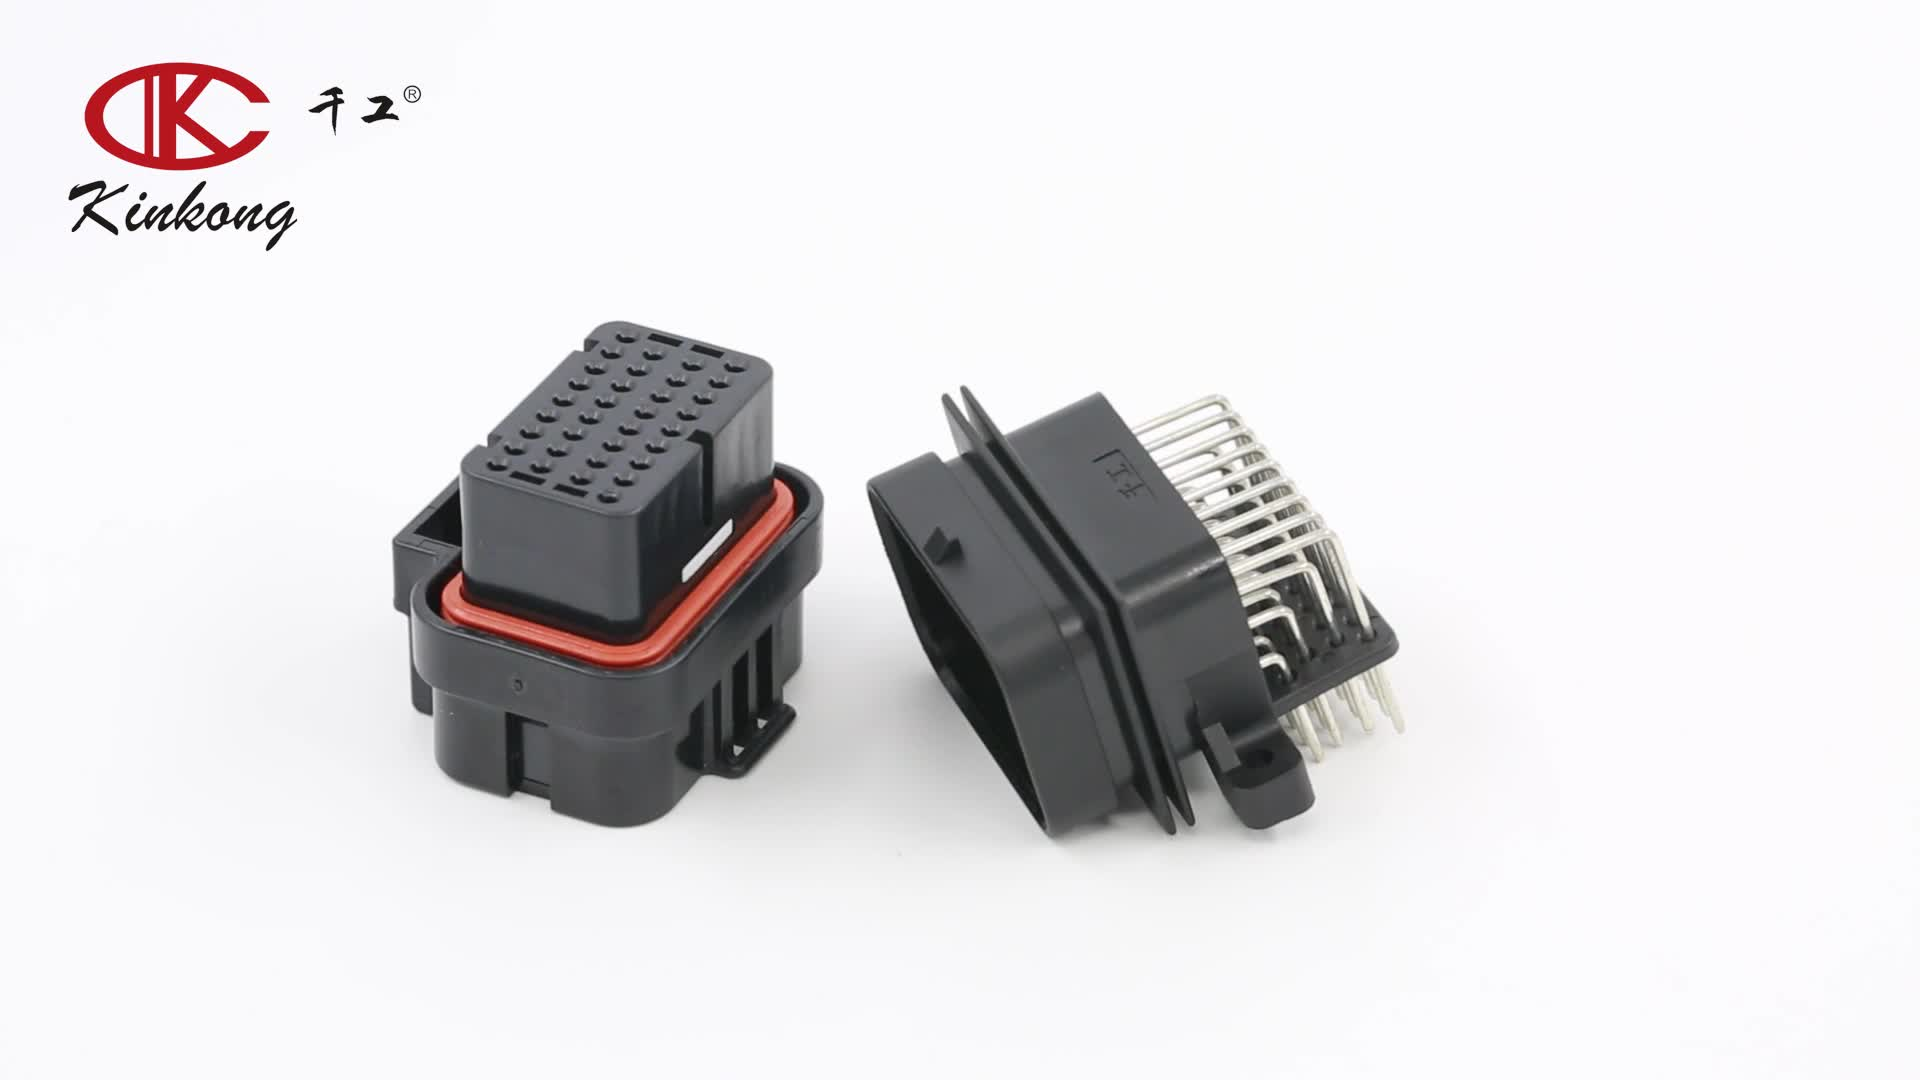 Kinkong 26P Tyco Super seal 1.0mm series ECU automotive Connector 3-1437290-7 3900113-2621